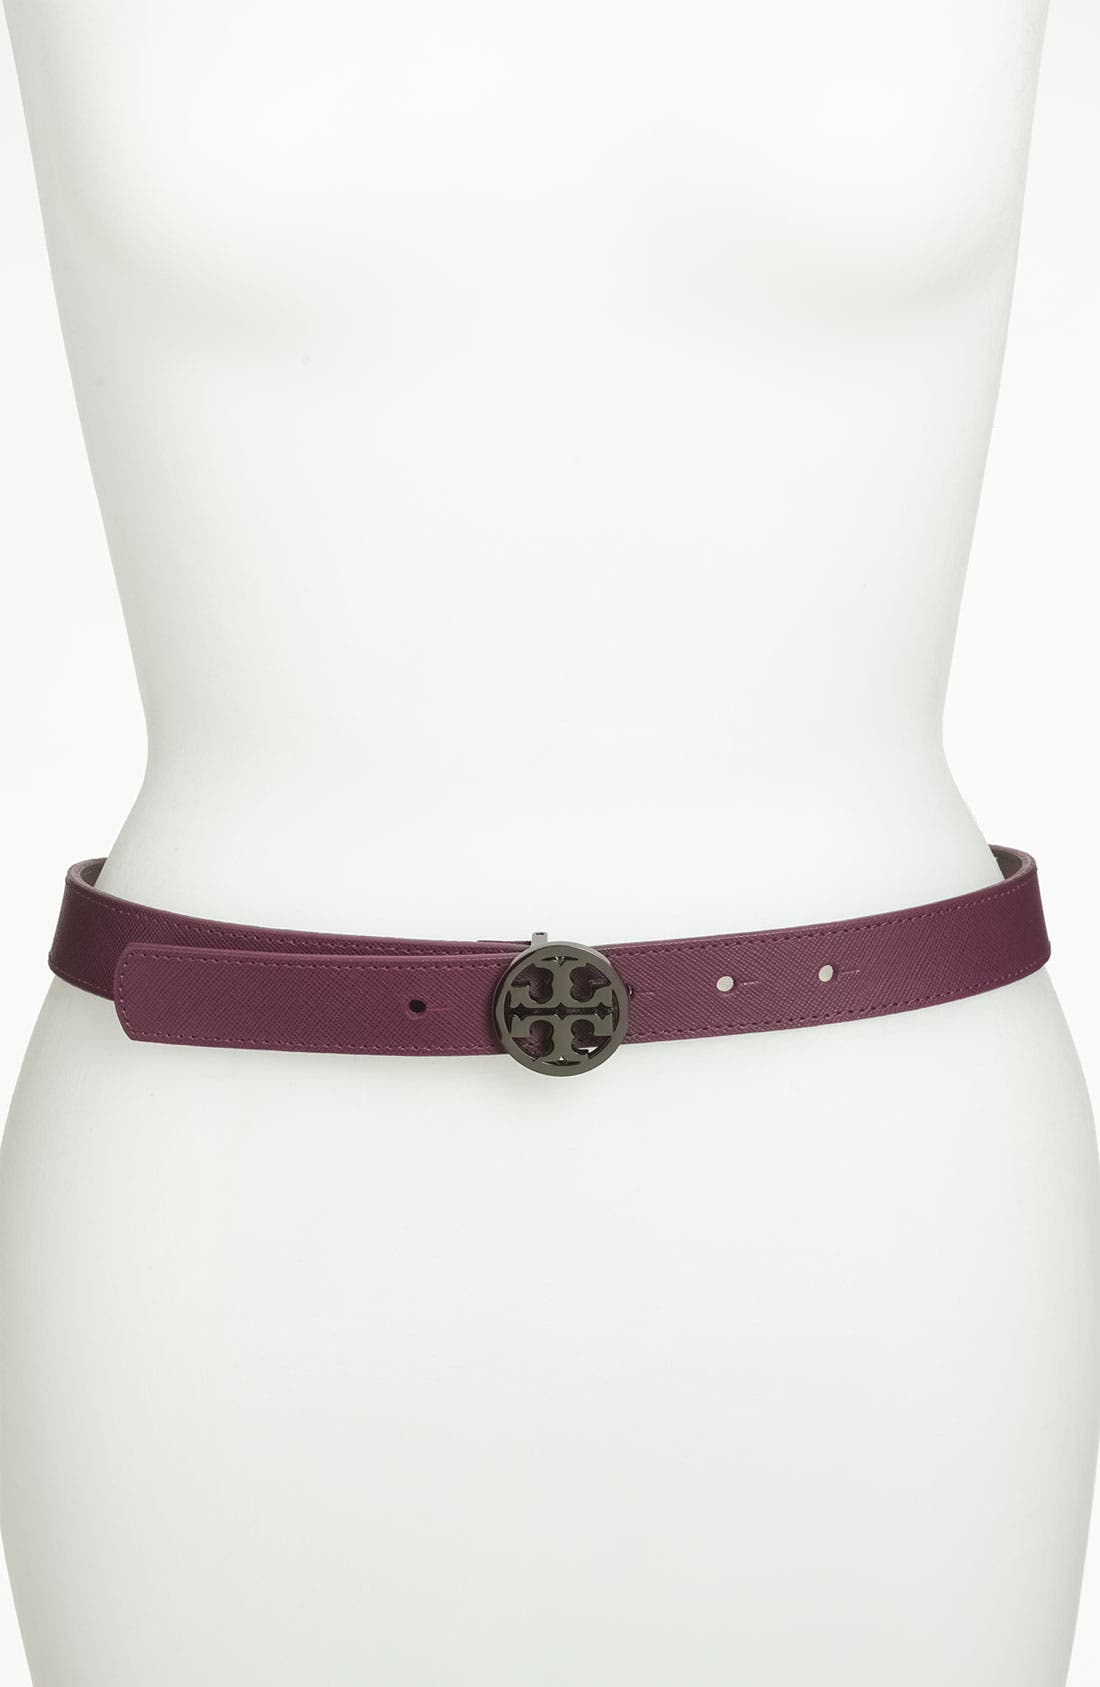 Alternate Image 1 Selected - Tory Burch 'Classic Tory Logo' Saffiano Leather Belt